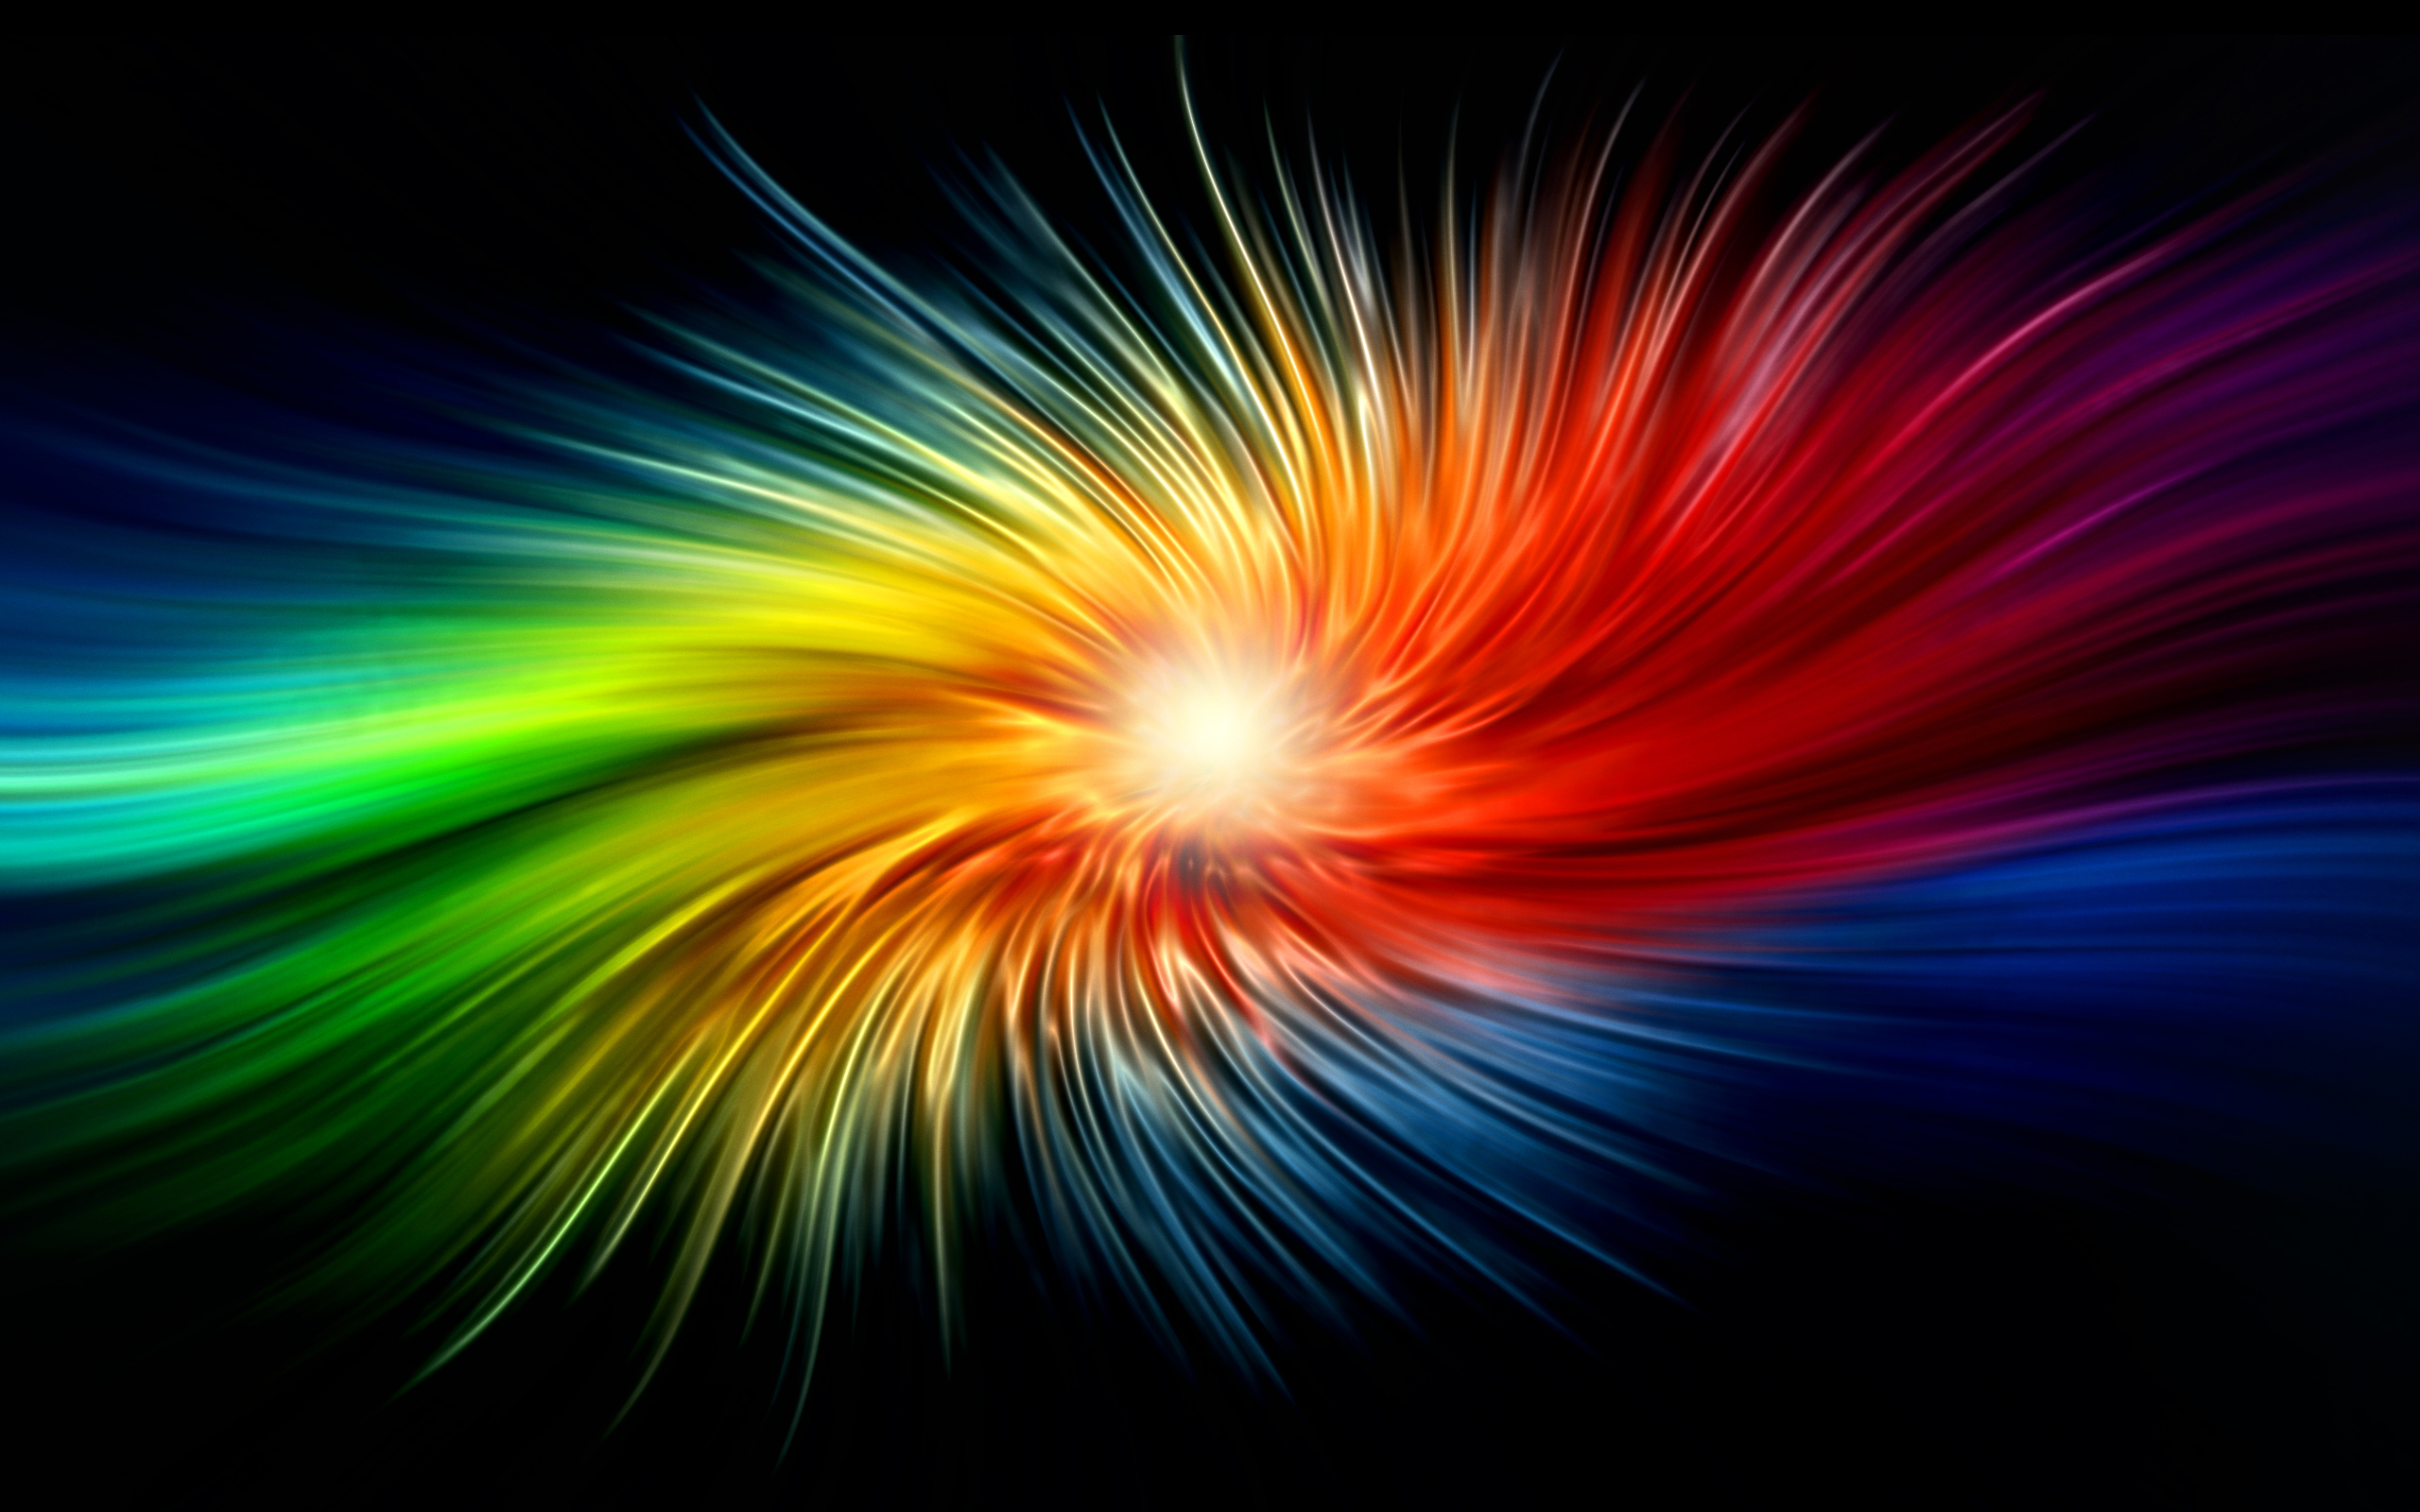 wallpapers and backgrounds desktop nexus abstract abstract wallpapers 2560x1600